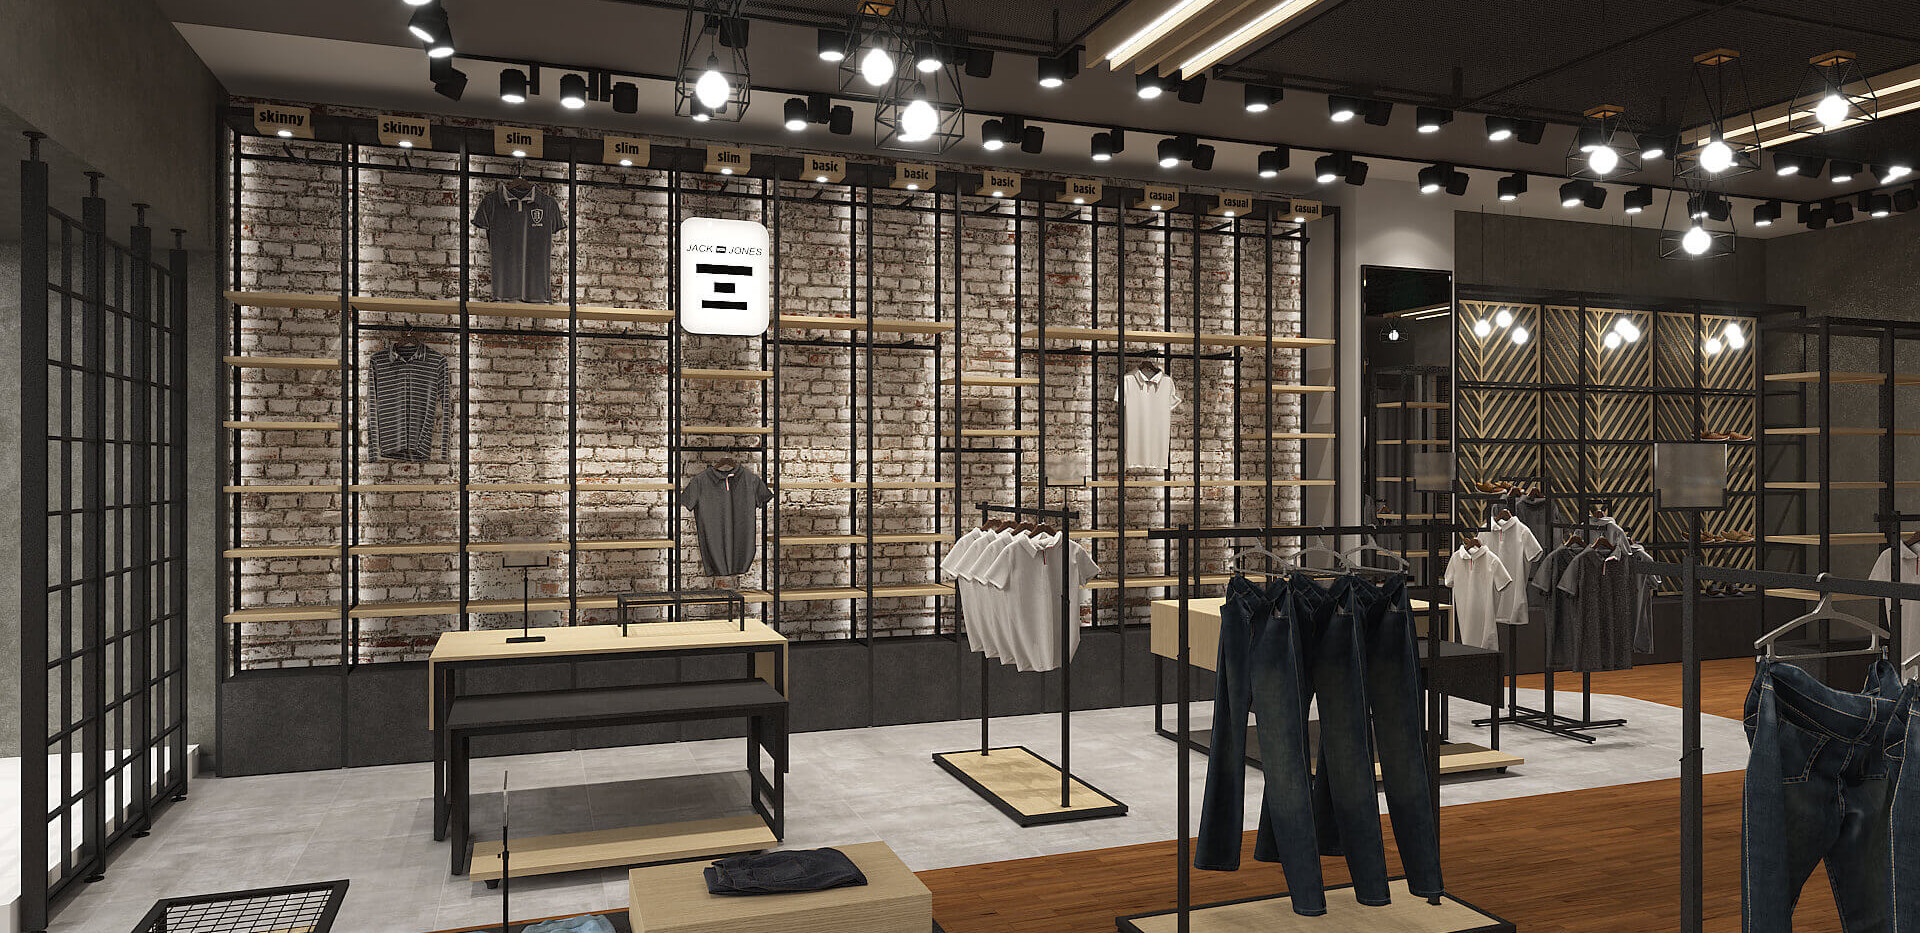 Dequell - Denim Store Shop Design-5.jpg